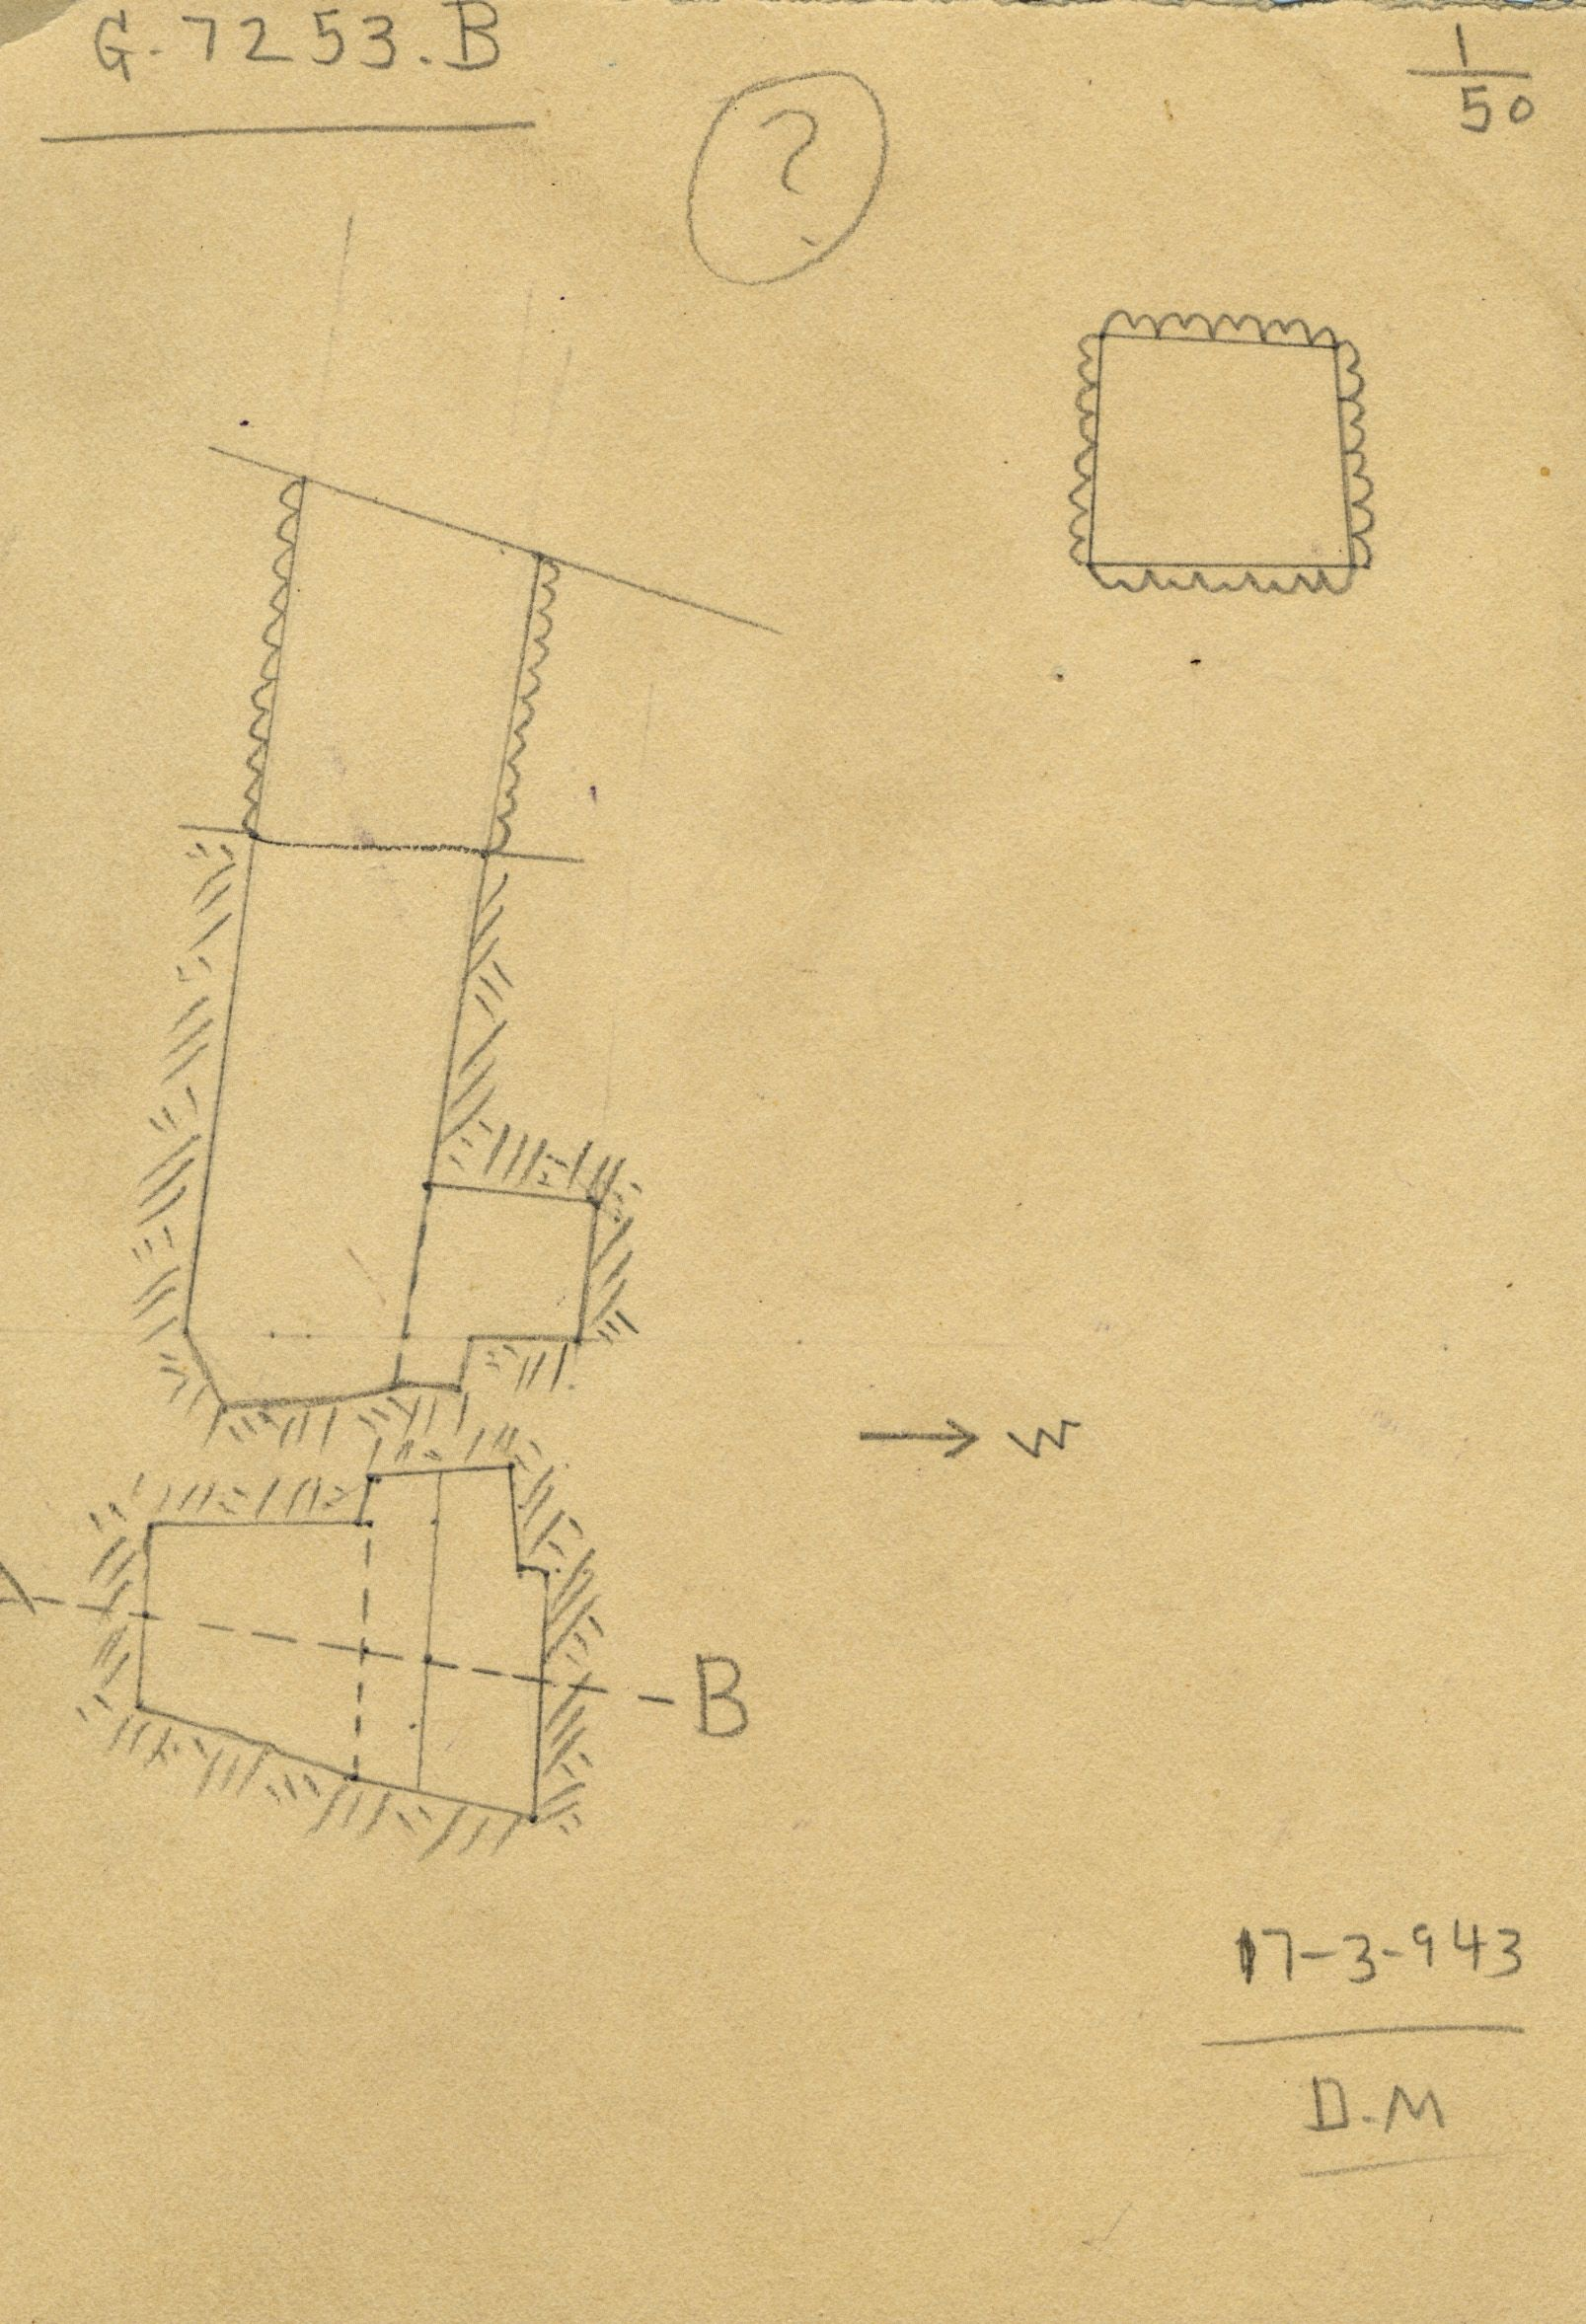 Maps and plans: G 7253, Shaft B